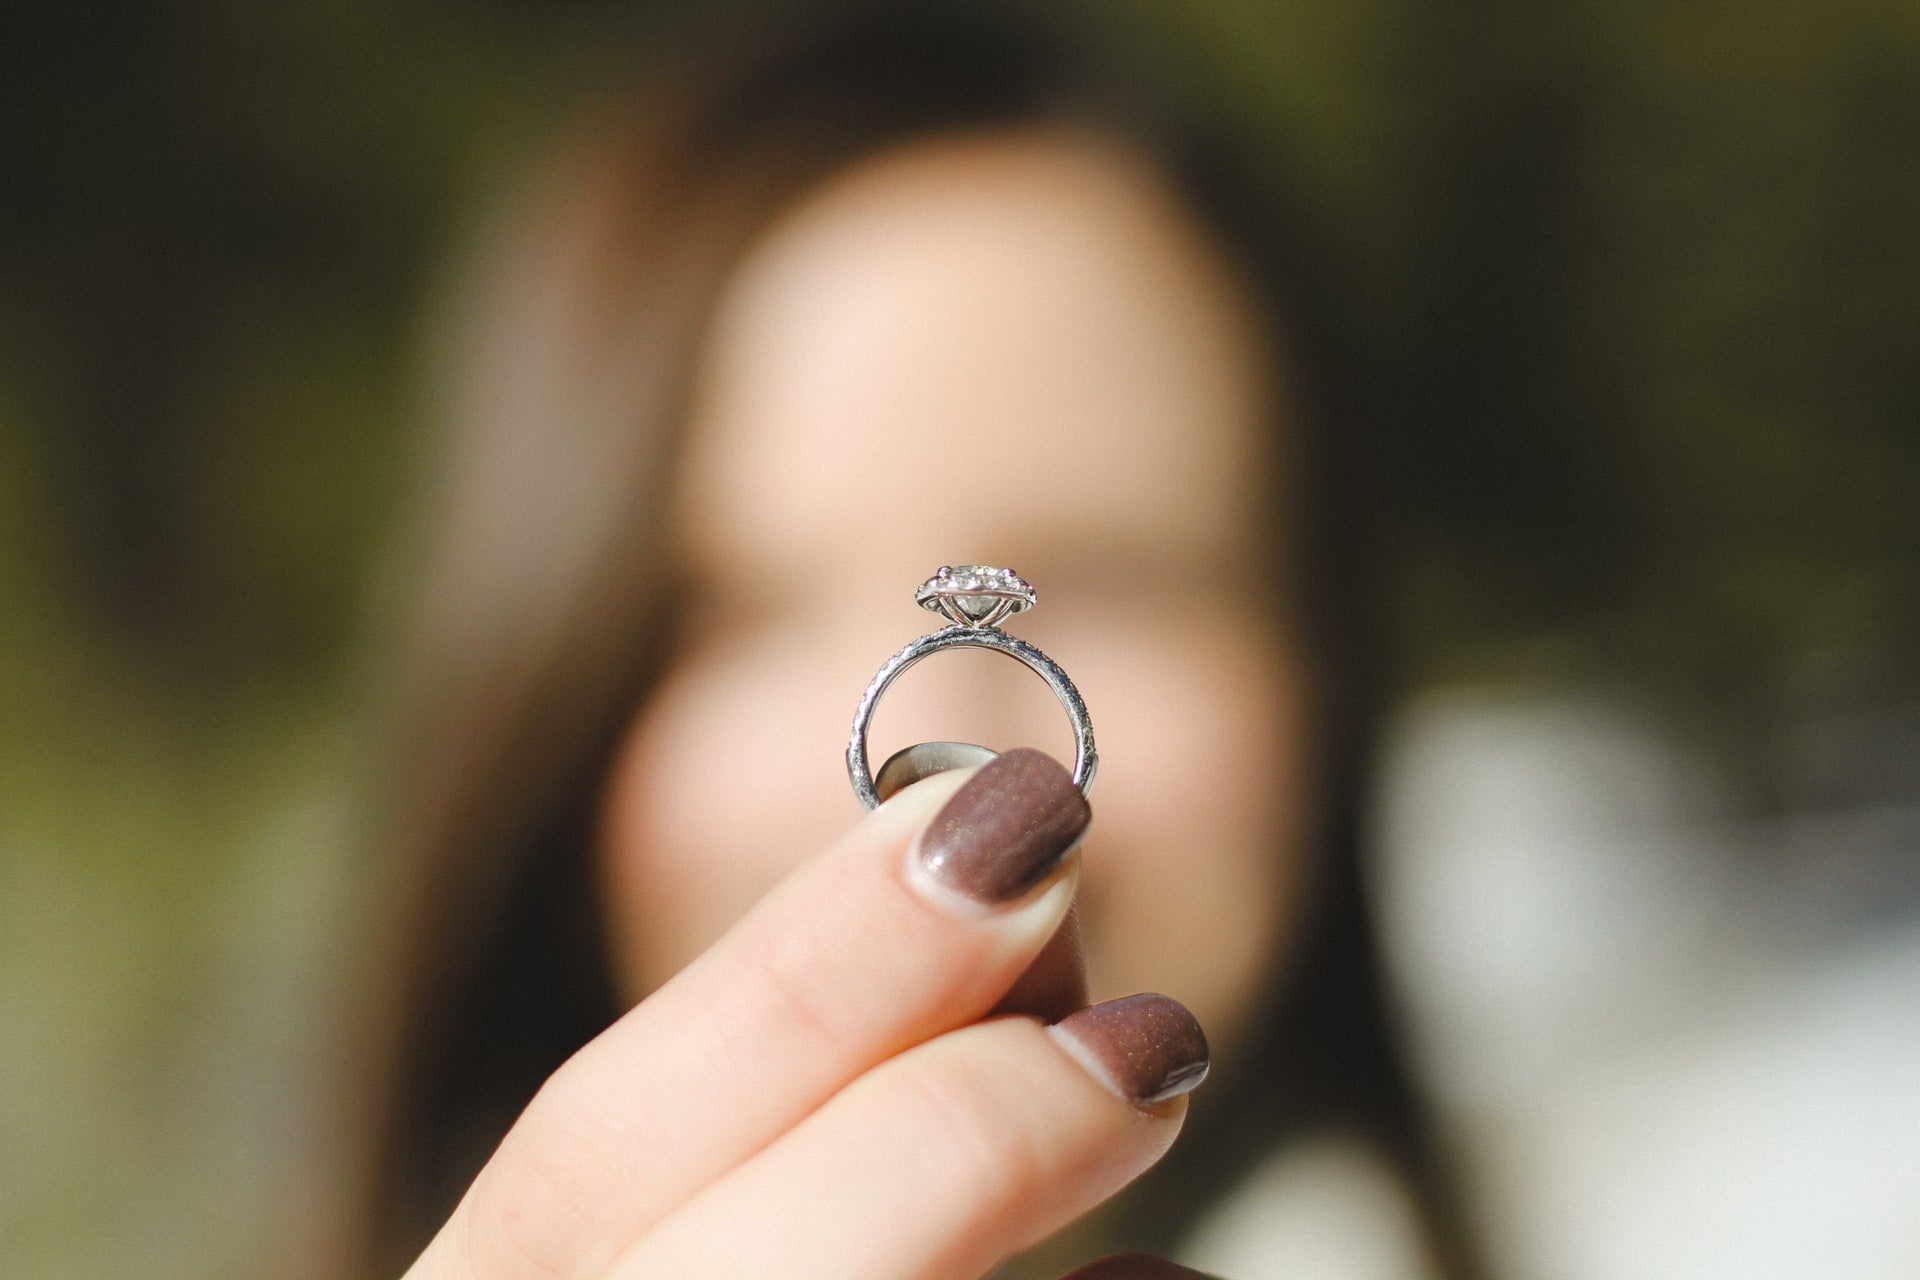 Woman holding an engagement ring